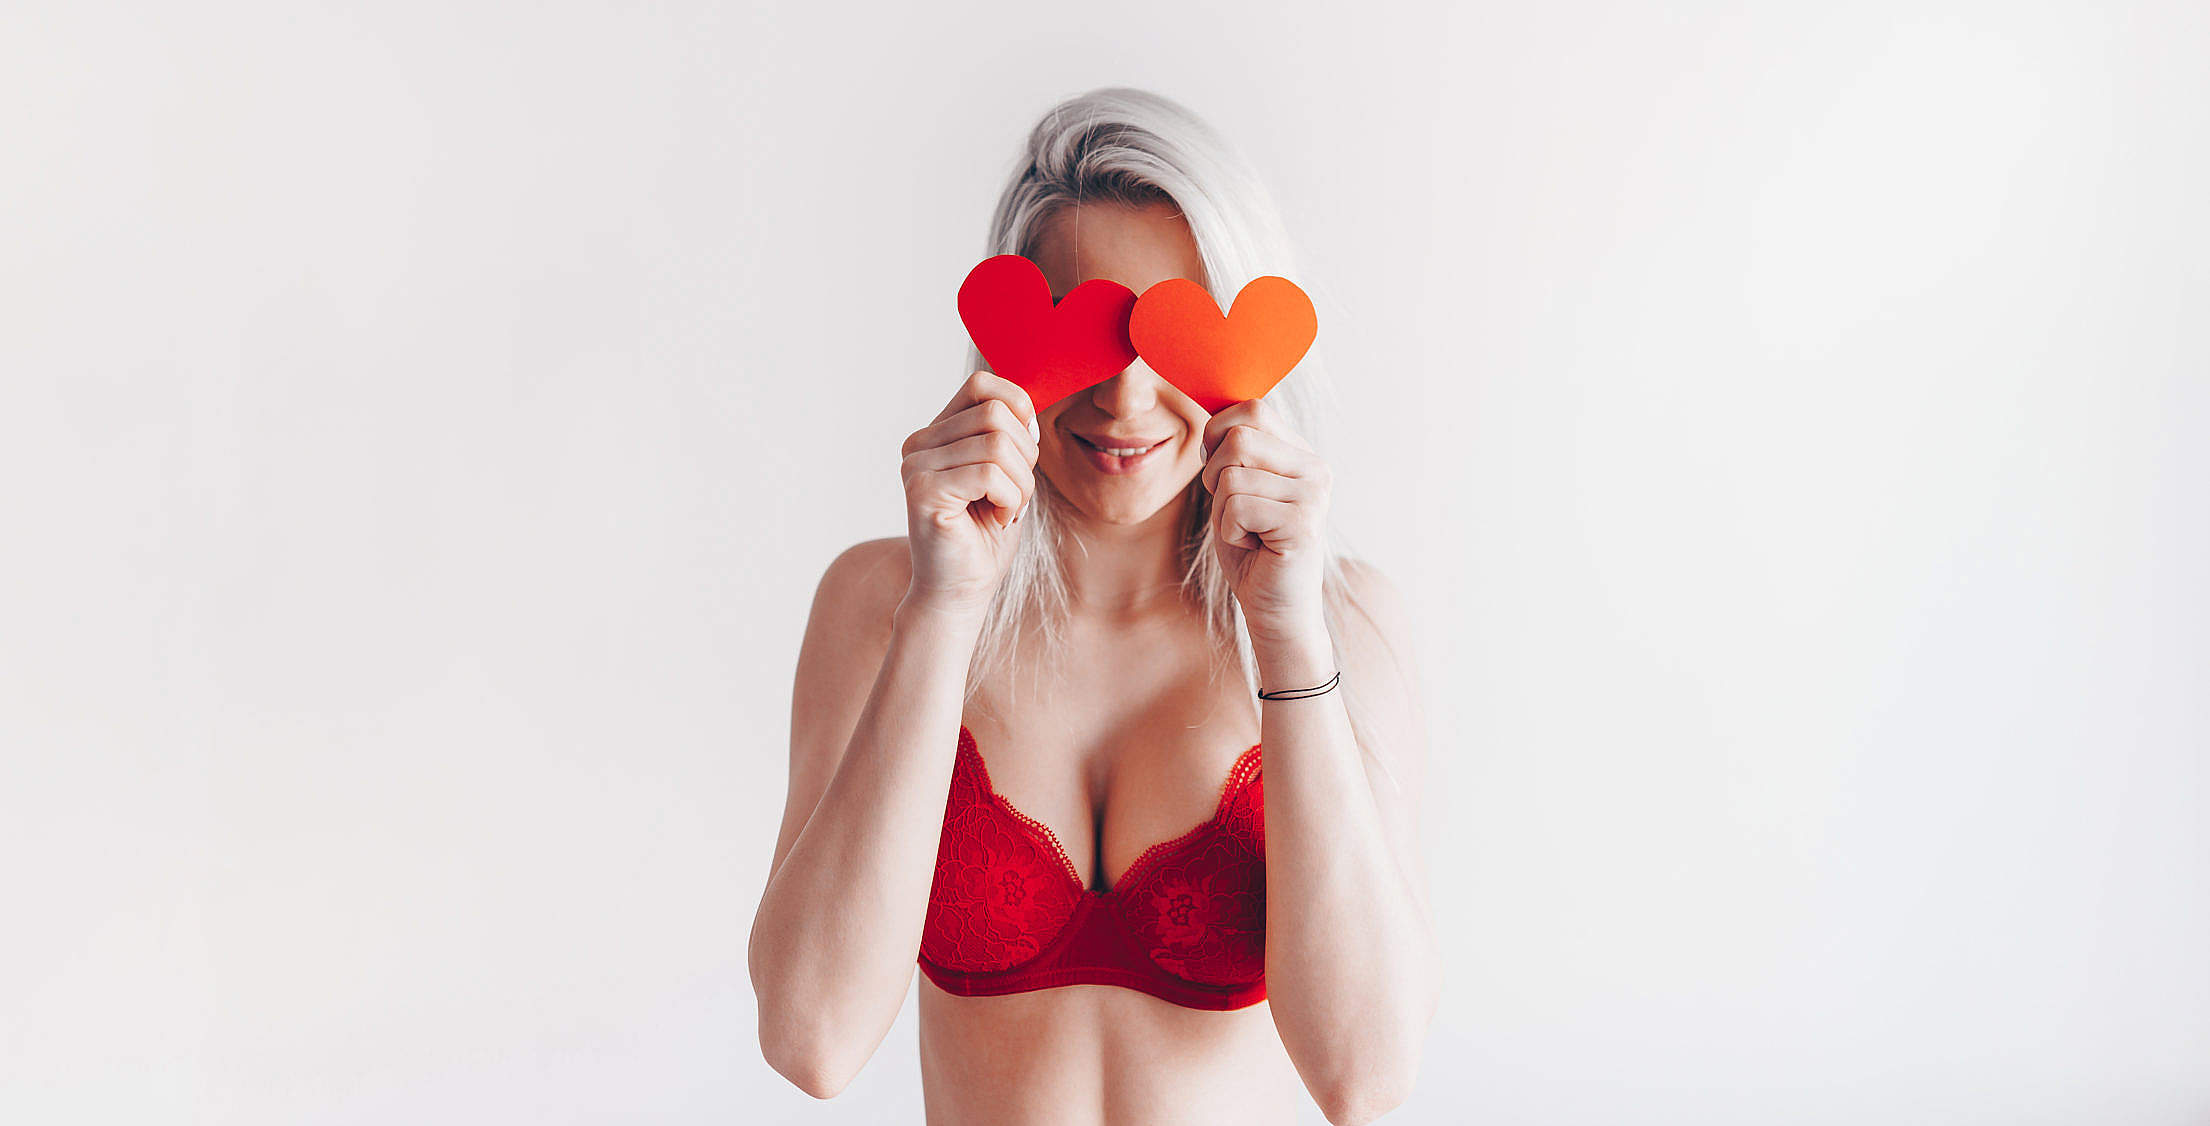 Young Happy Woman with Valentine's Day Hearts Free Stock Photo